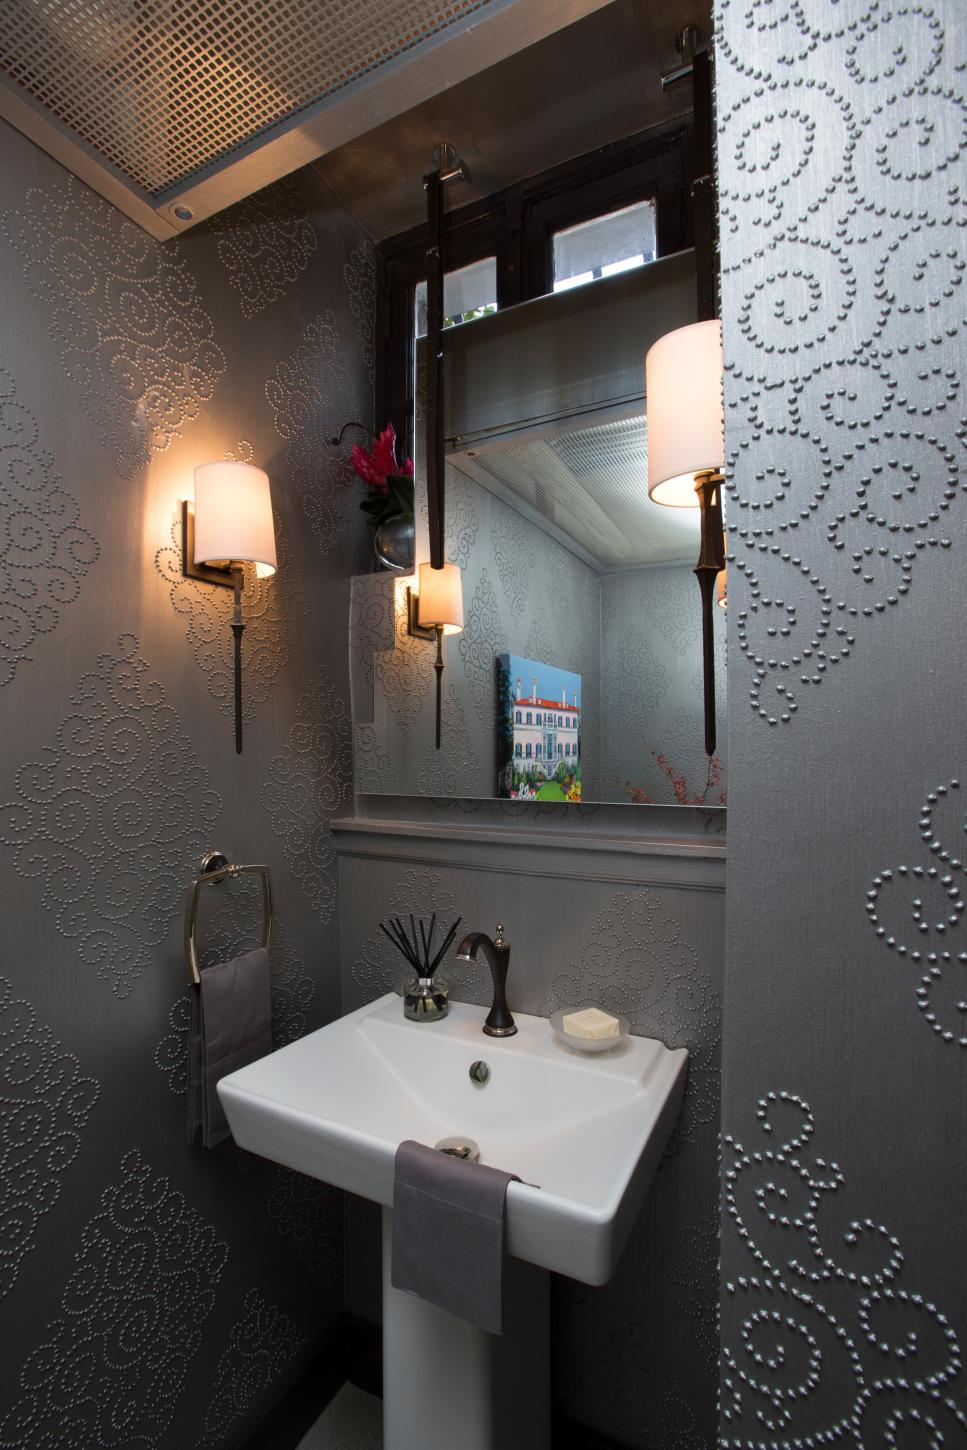 Tiny Powder Room Designs: Bathroom Ideas & Designs